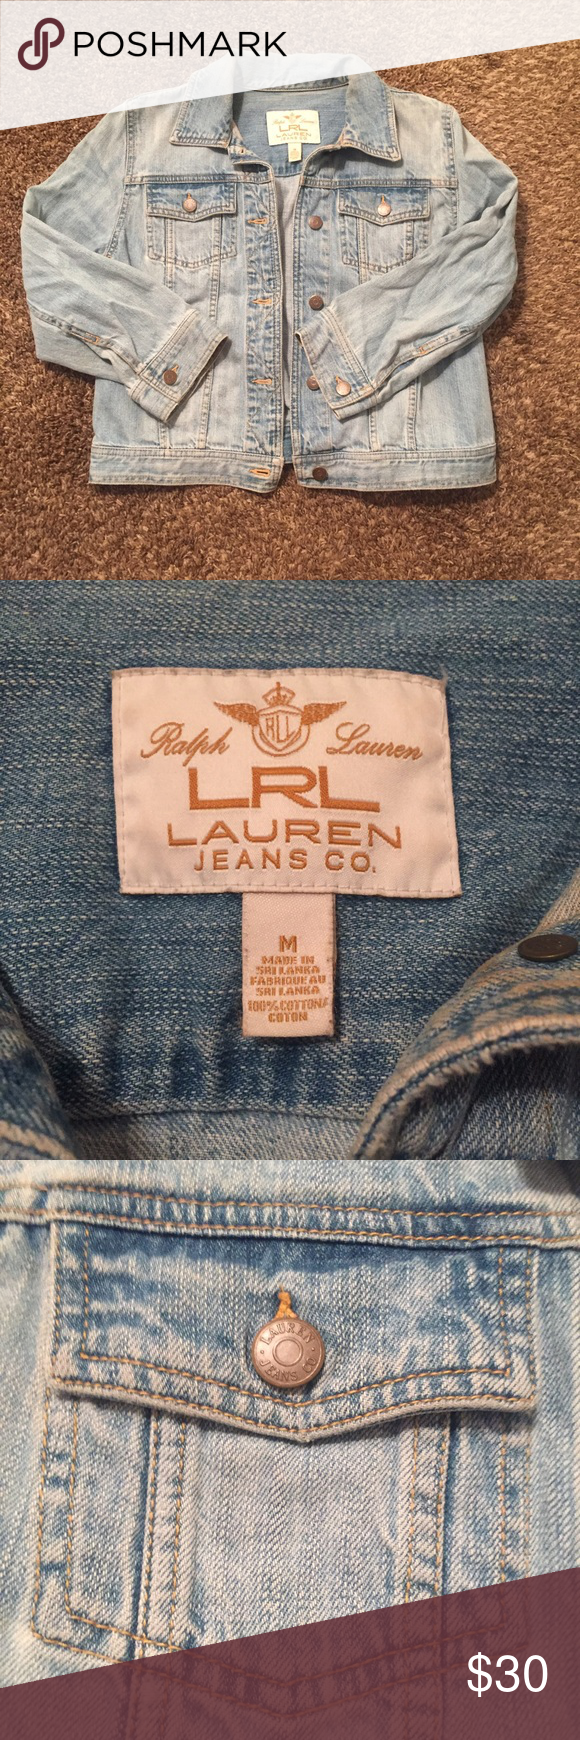 Jean Jacket Great light wash jean jacket! In perfect condition and only worn a few times! Offers welcome. Lauren Ralph Lauren Jackets & Coats Jean Jackets